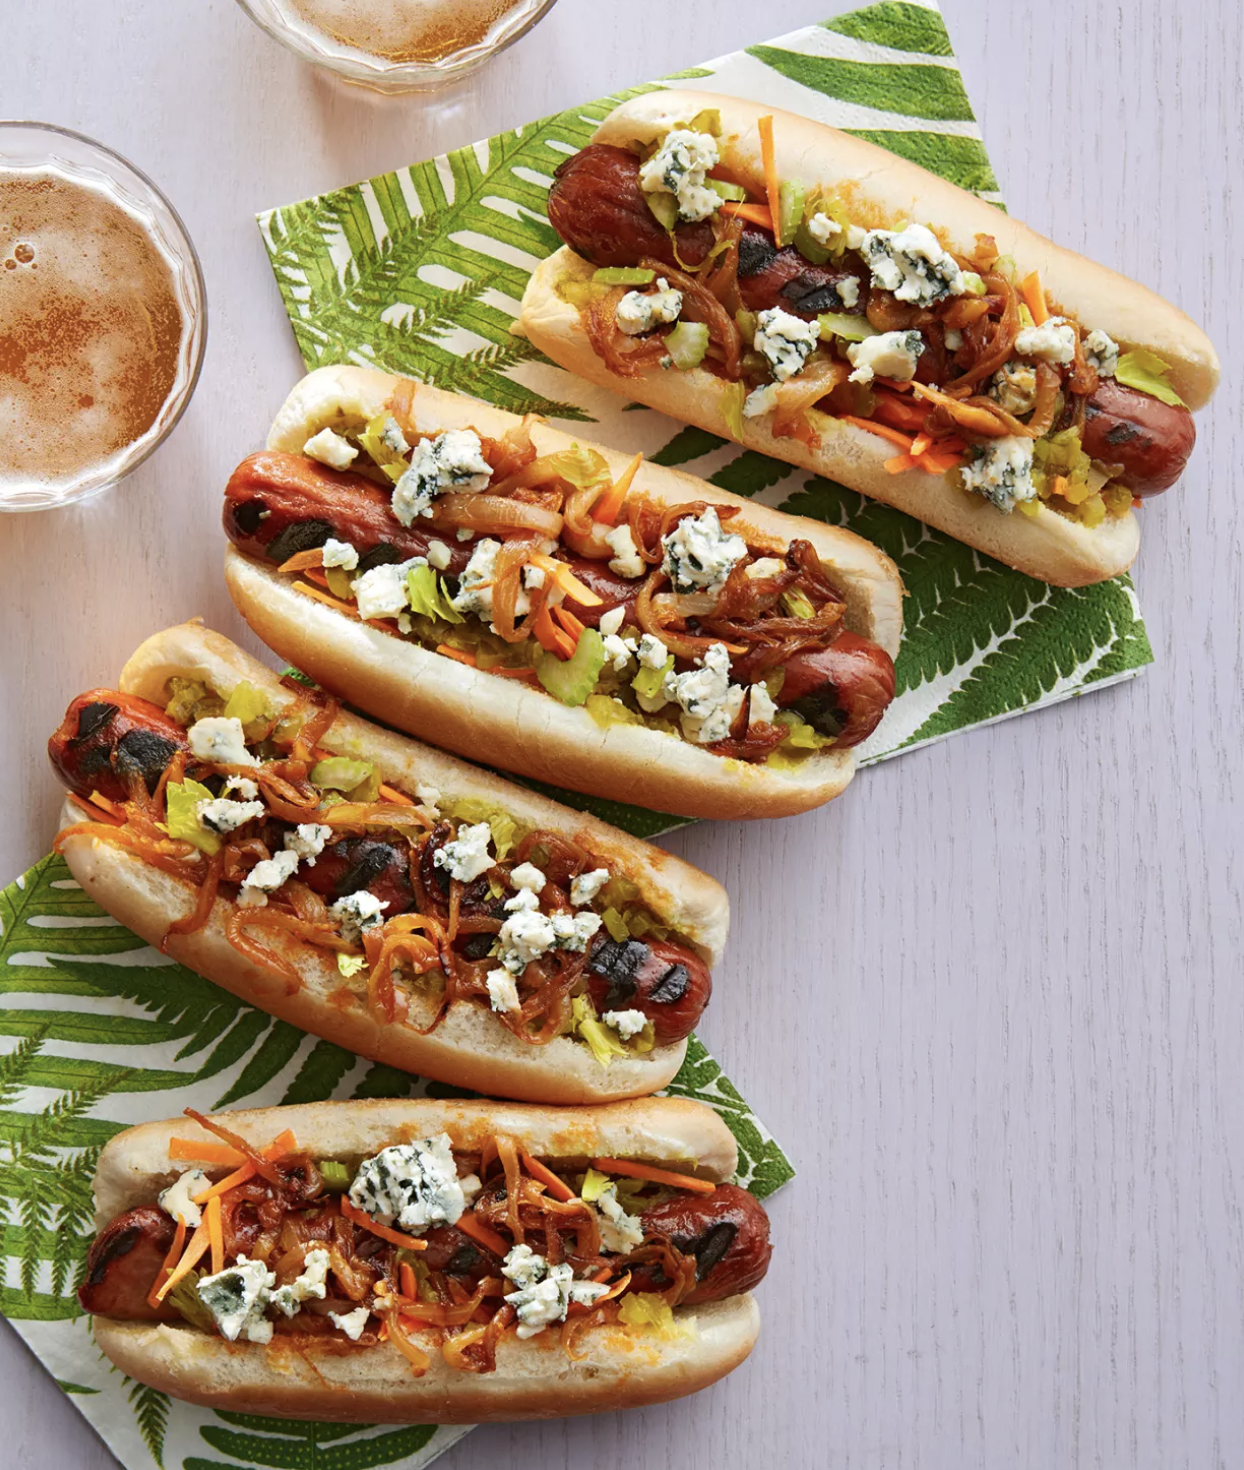 Screen Shot 2018-09-02 at 2.08.01 PM.png